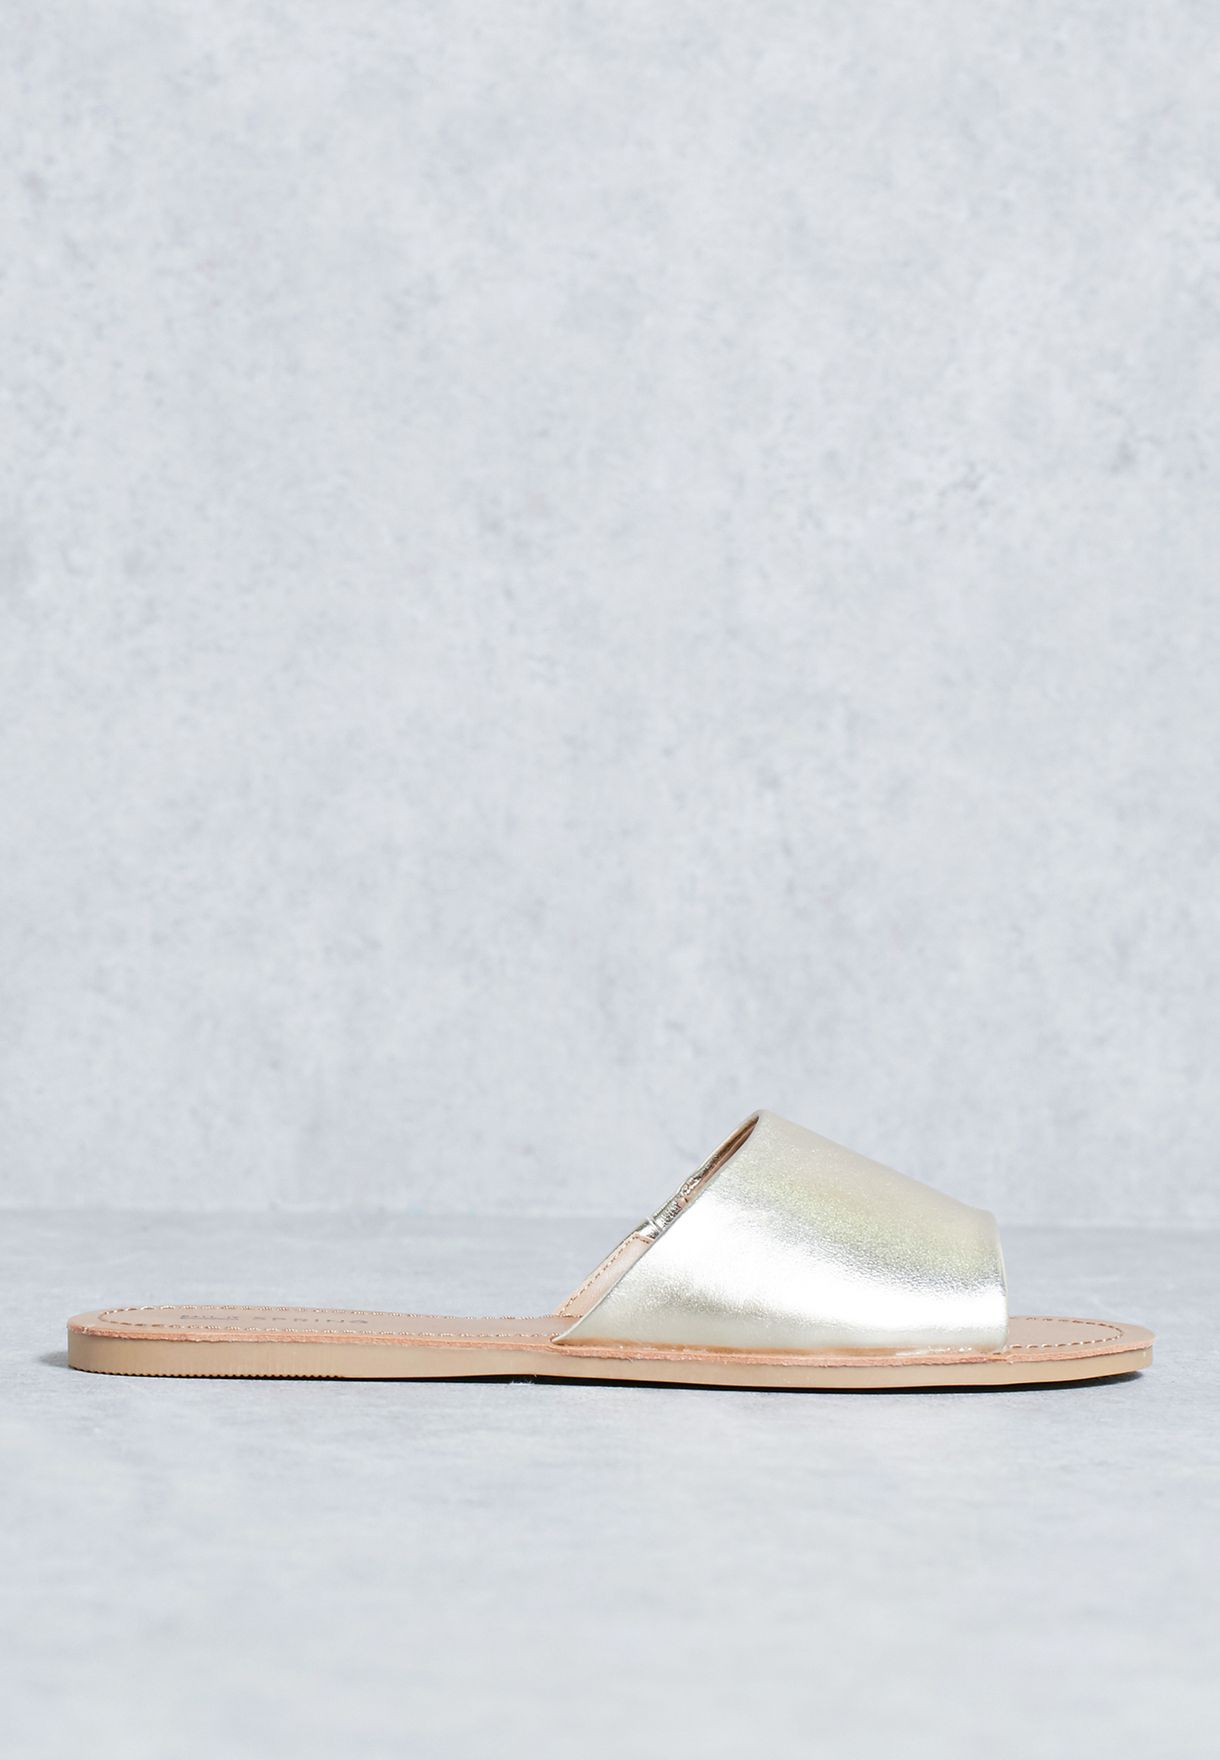 low priced 96663 f9dcd Shop Call it spring gold Mule sandal THIRENIA82 for Women in UAE low-cost